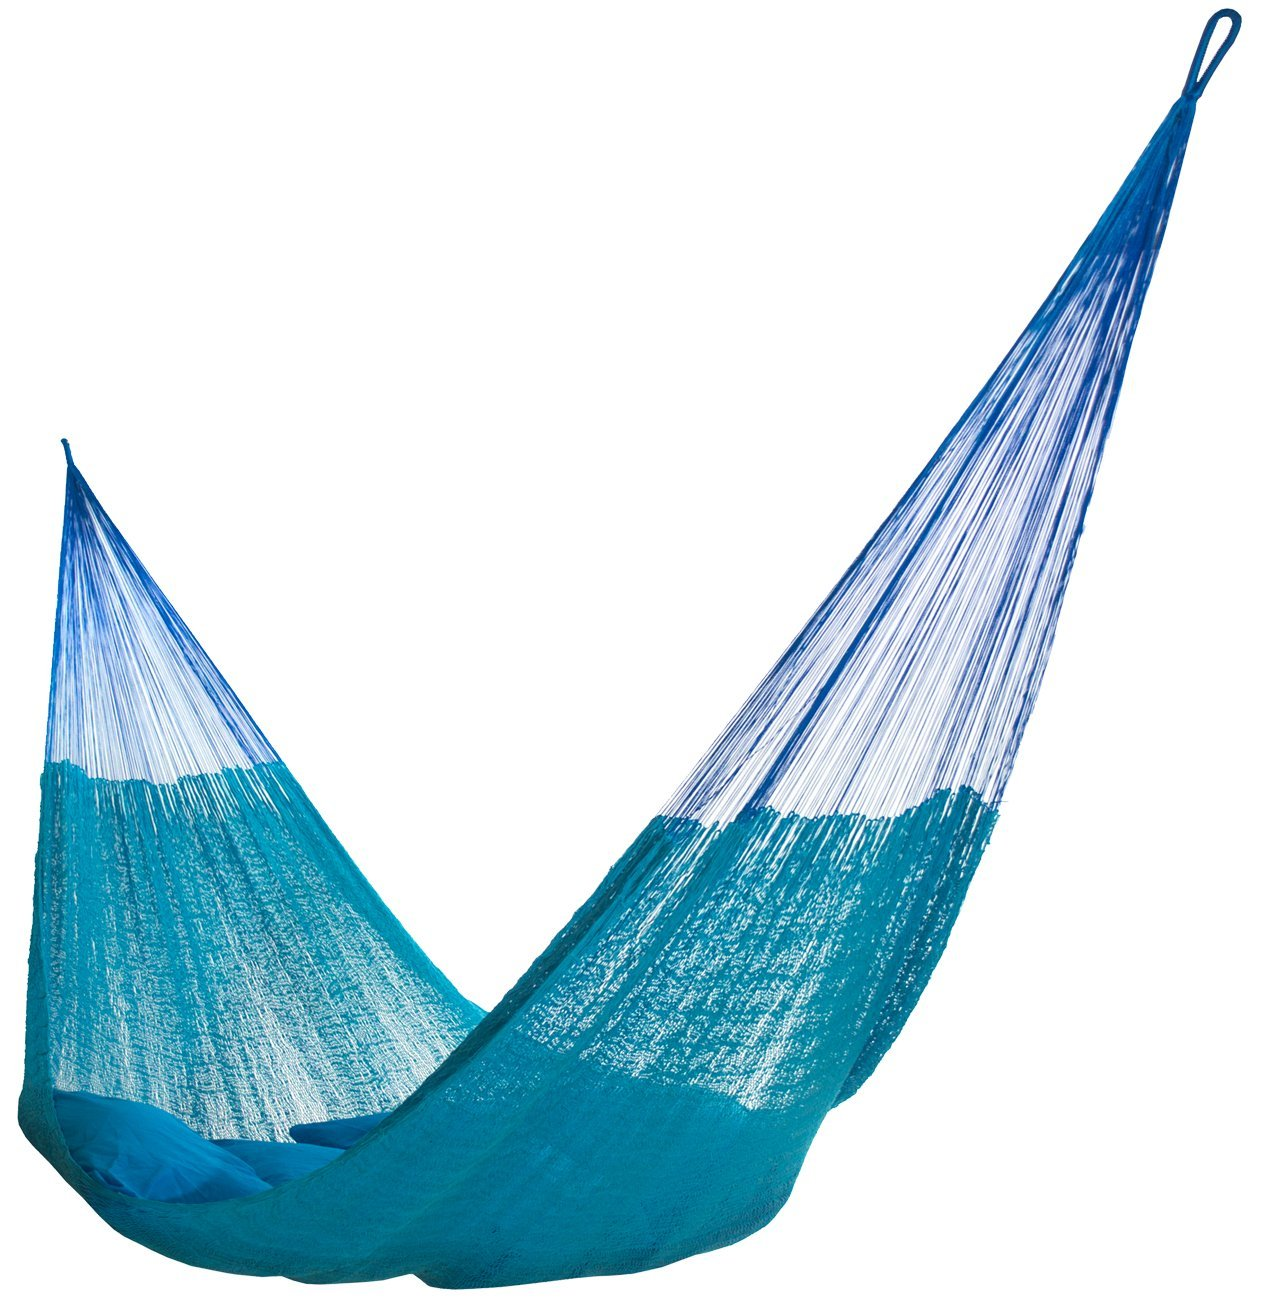 Hammocks Rada- Handmade Yucatan Hammock - Matrimonial Size - 13ft long Artisan Crafted - Parent (Sky Blue)